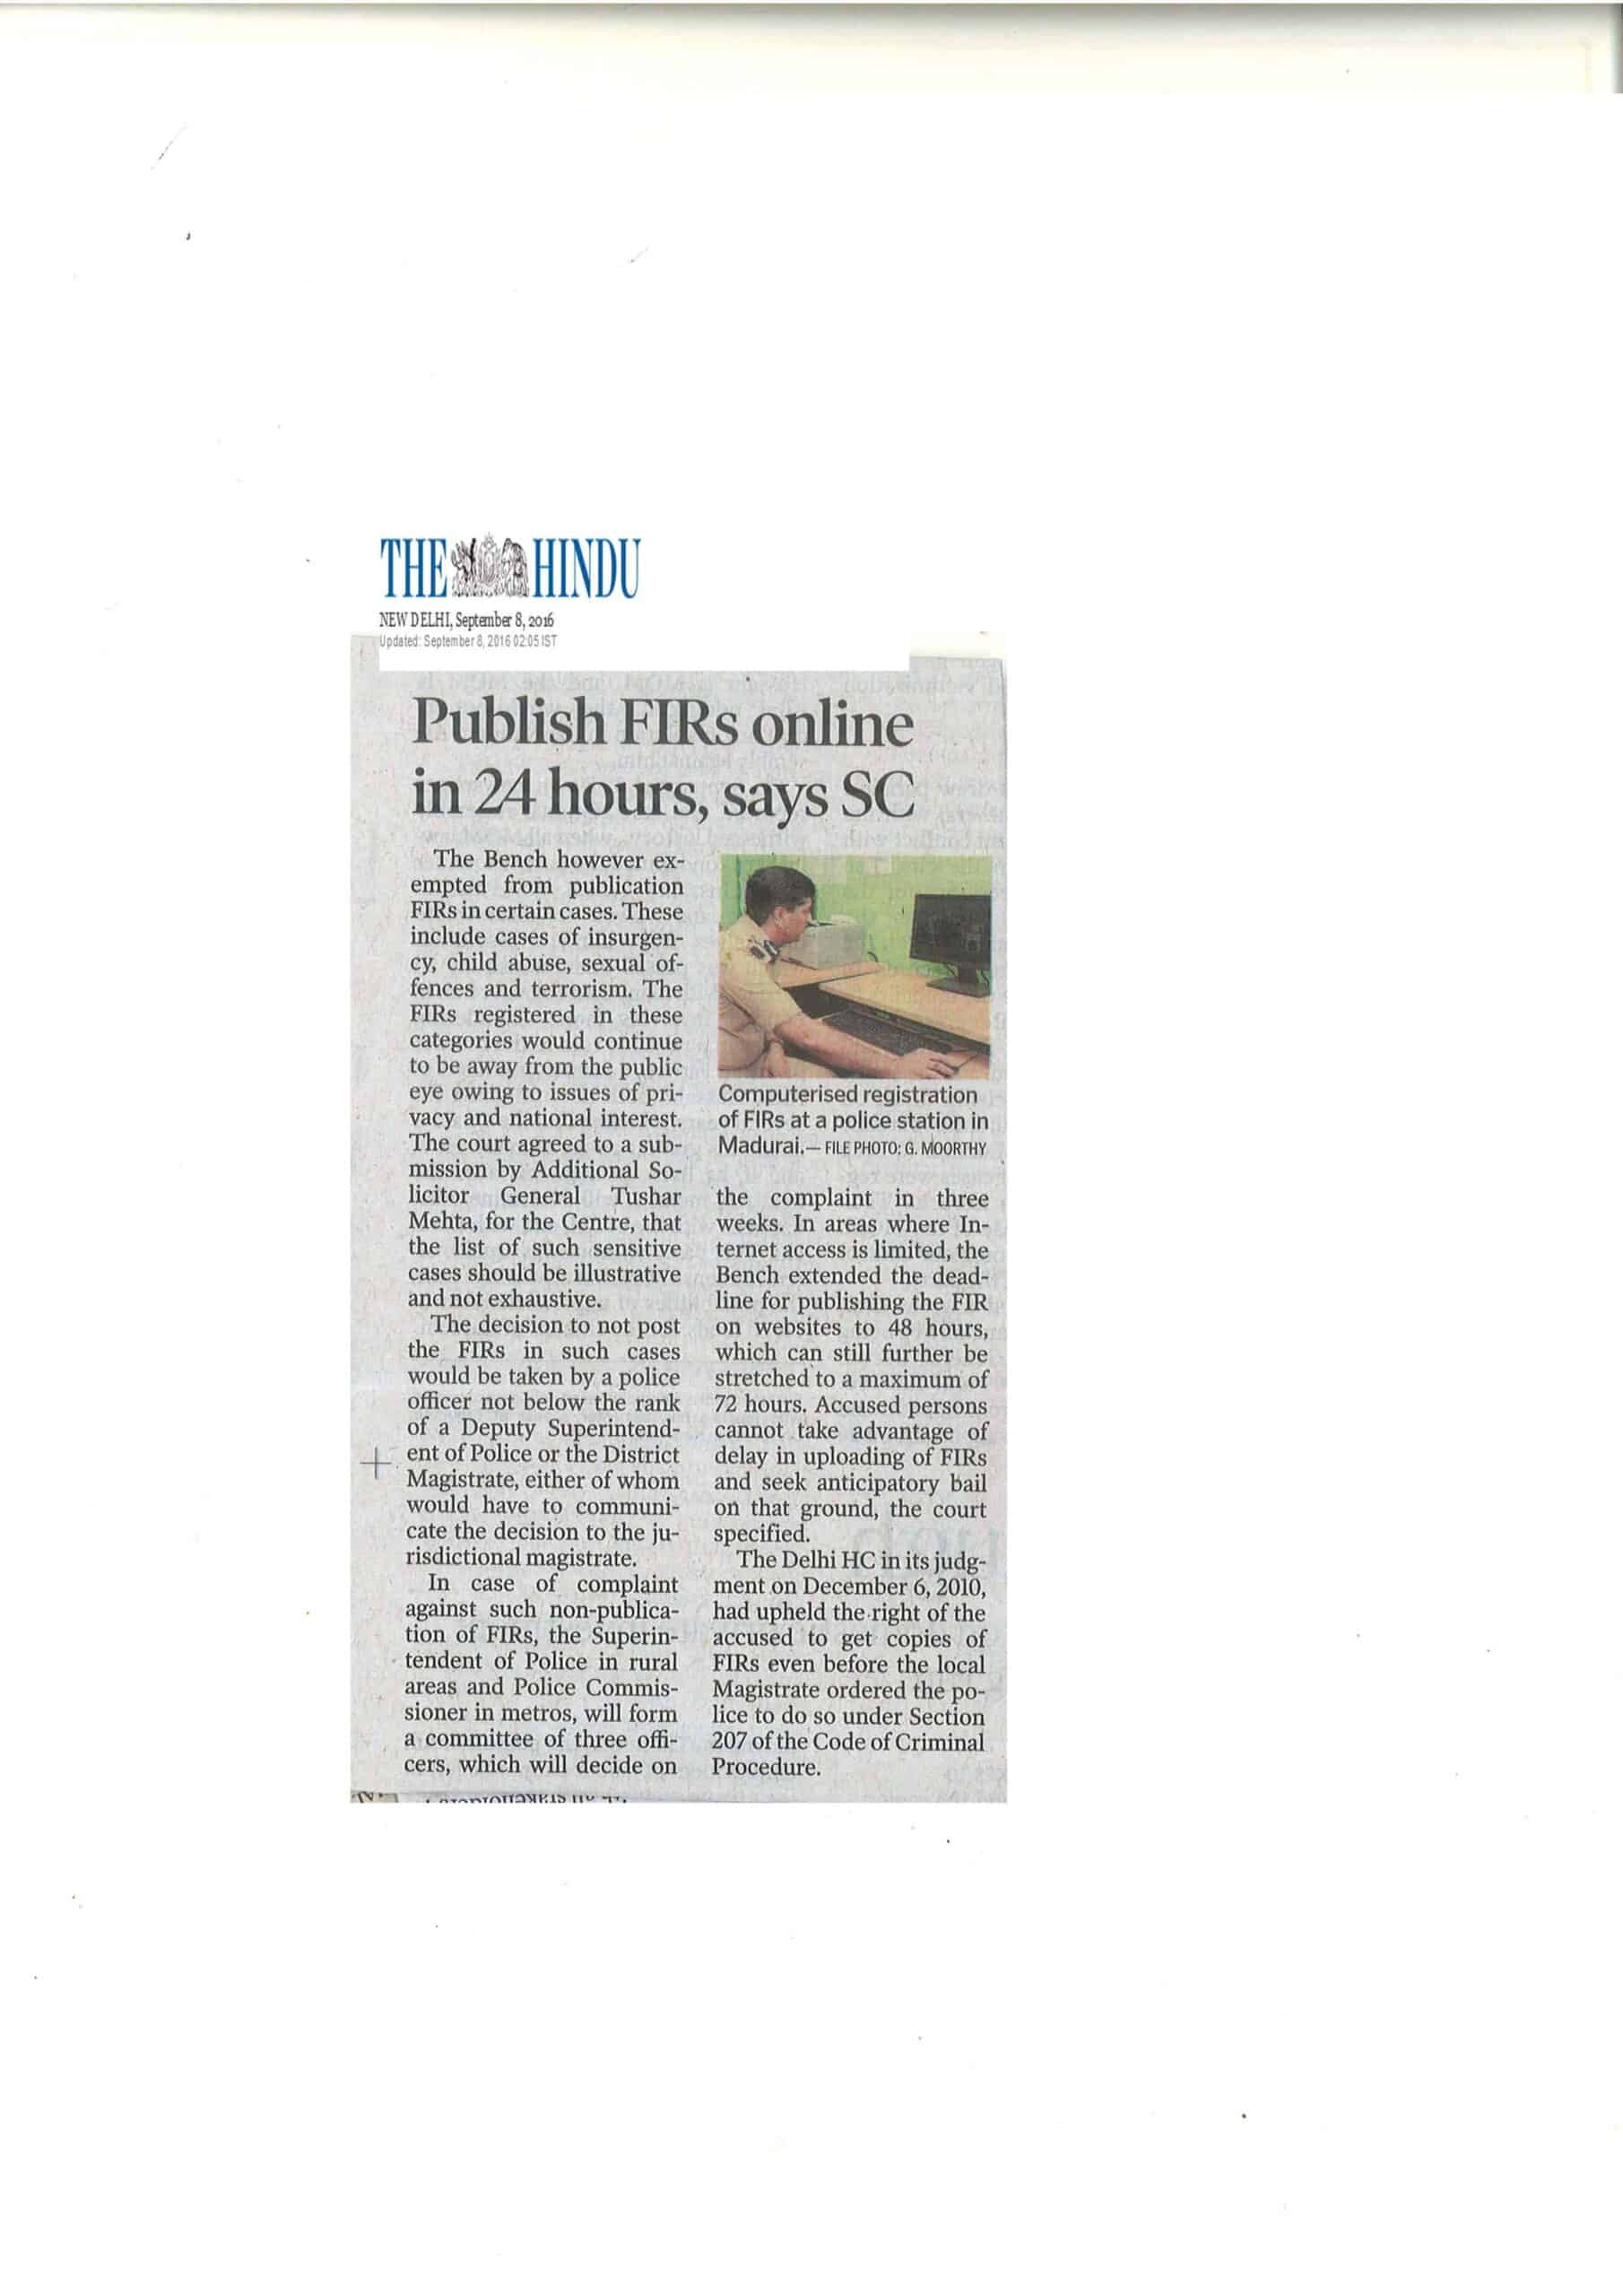 Publish FIRs online in 24 hours says SC